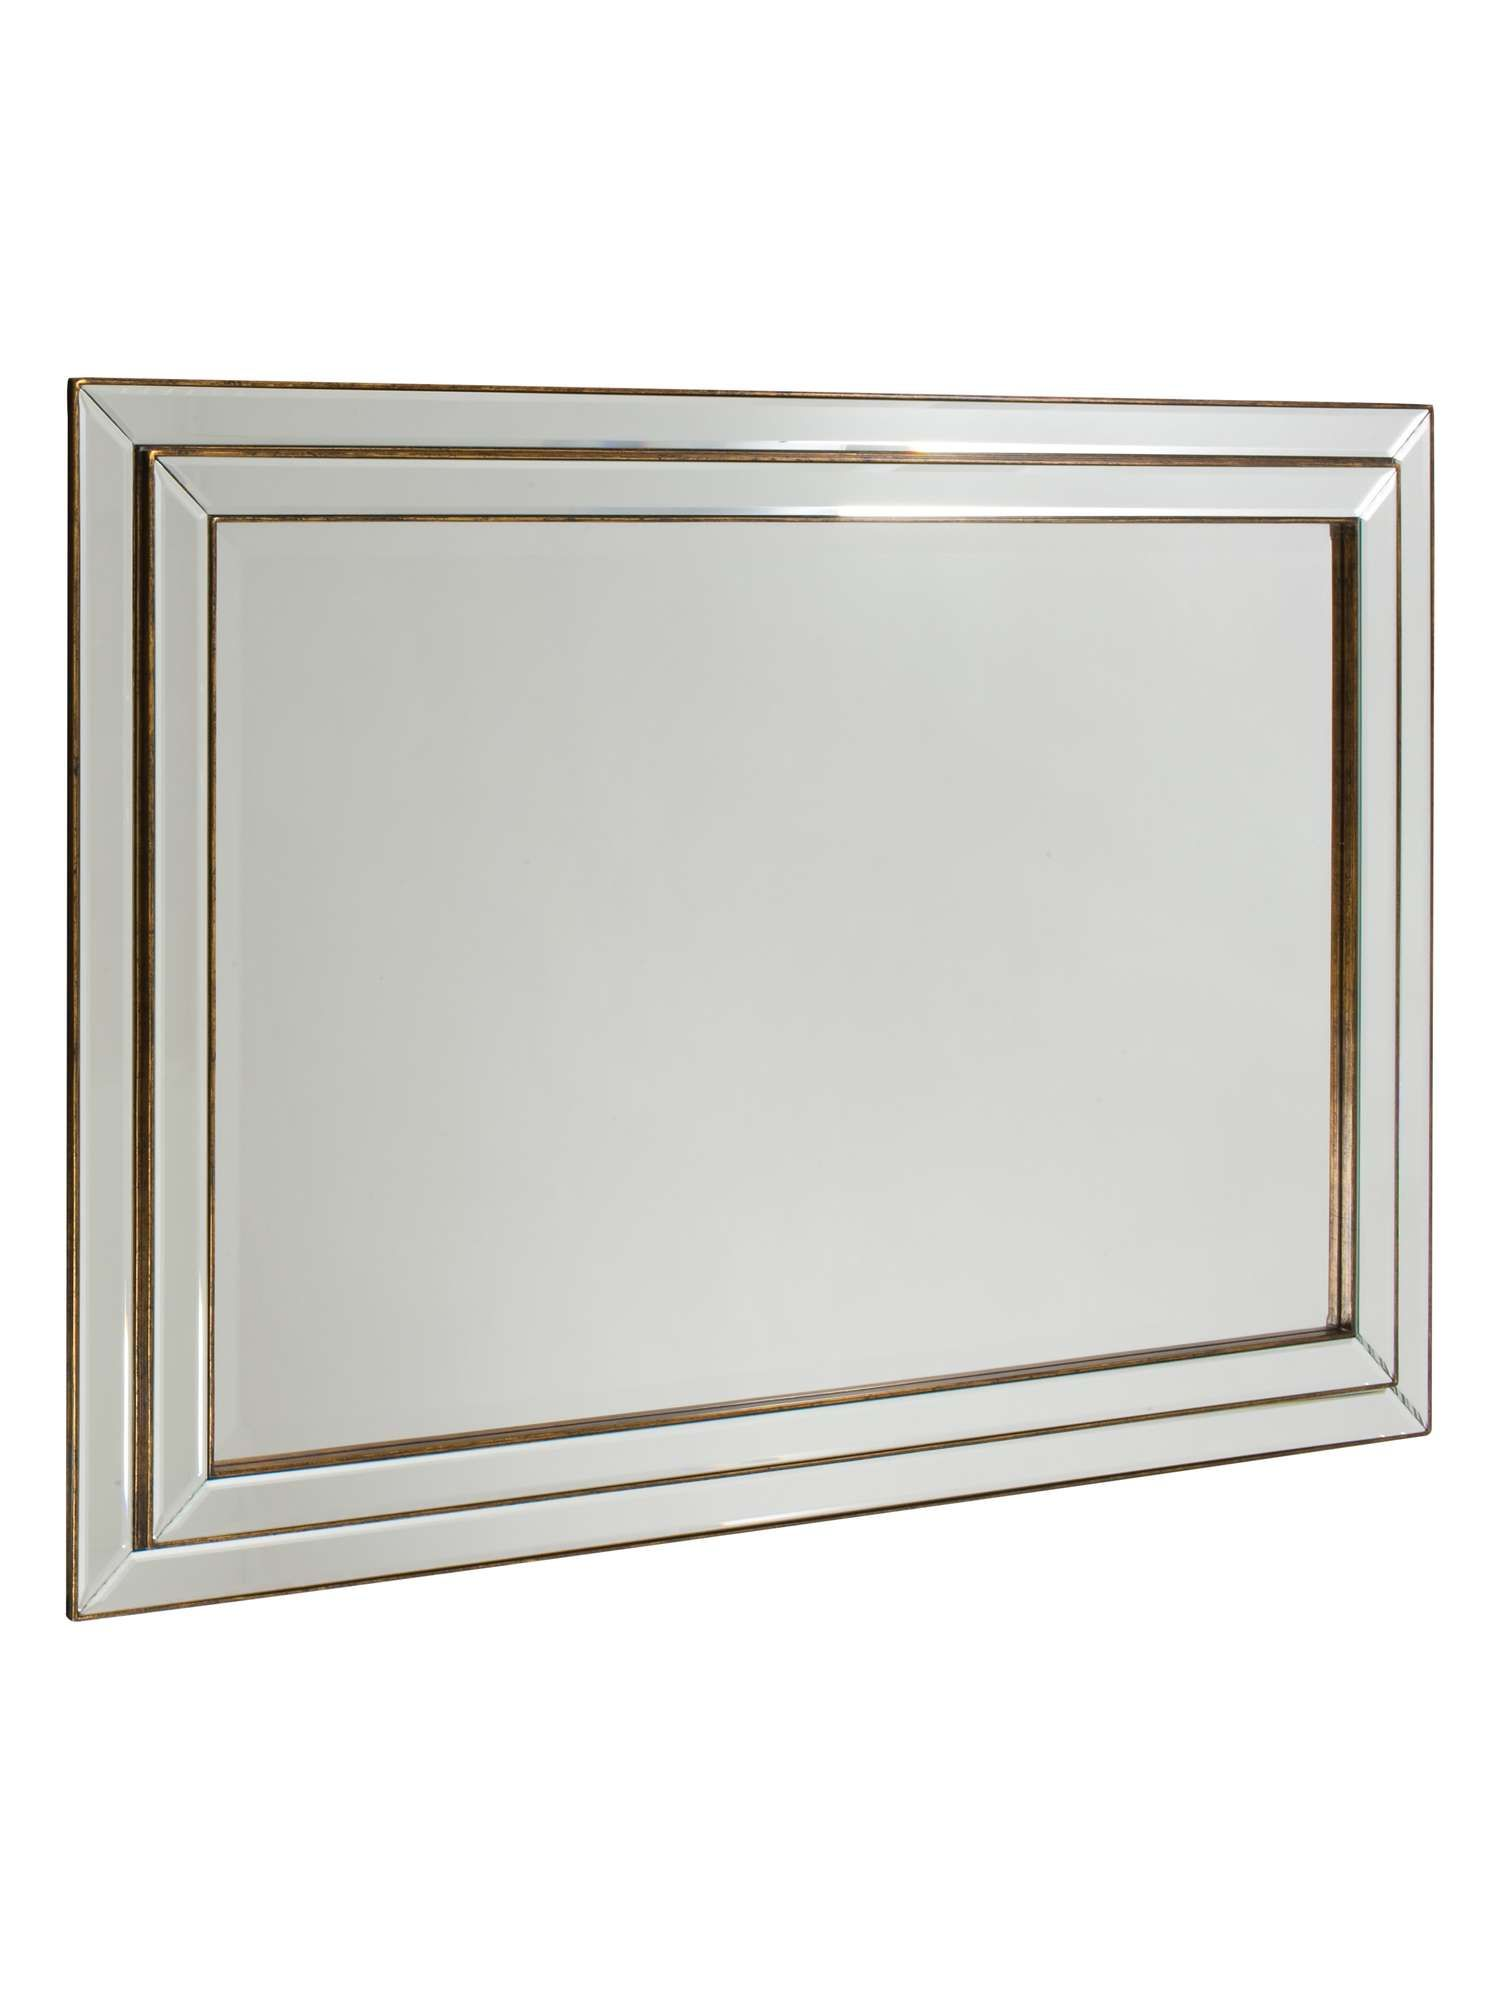 Meubles Fraser Furniture 136 House Of Fraser Linea Iris Mirror 940 X 680 Decor Home